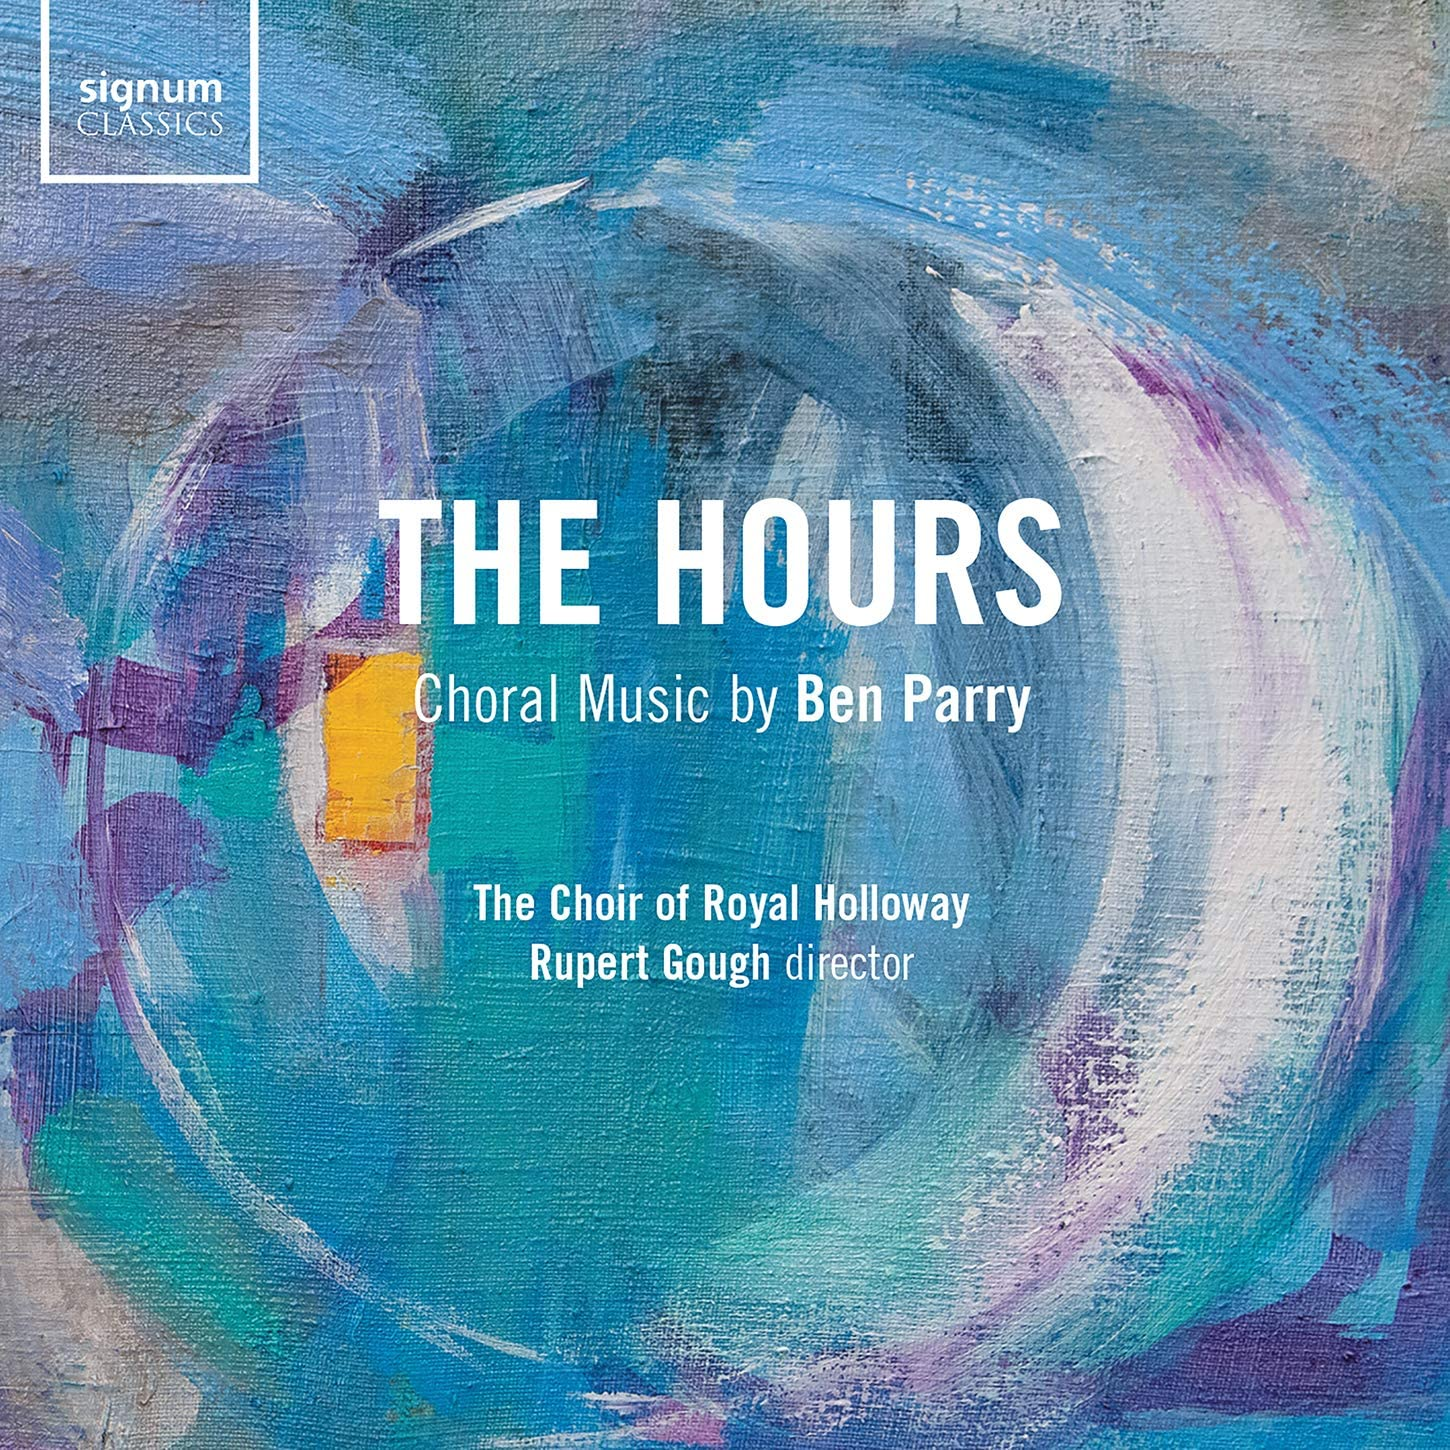 Review of The Hours: Choral Music by Ben Parry